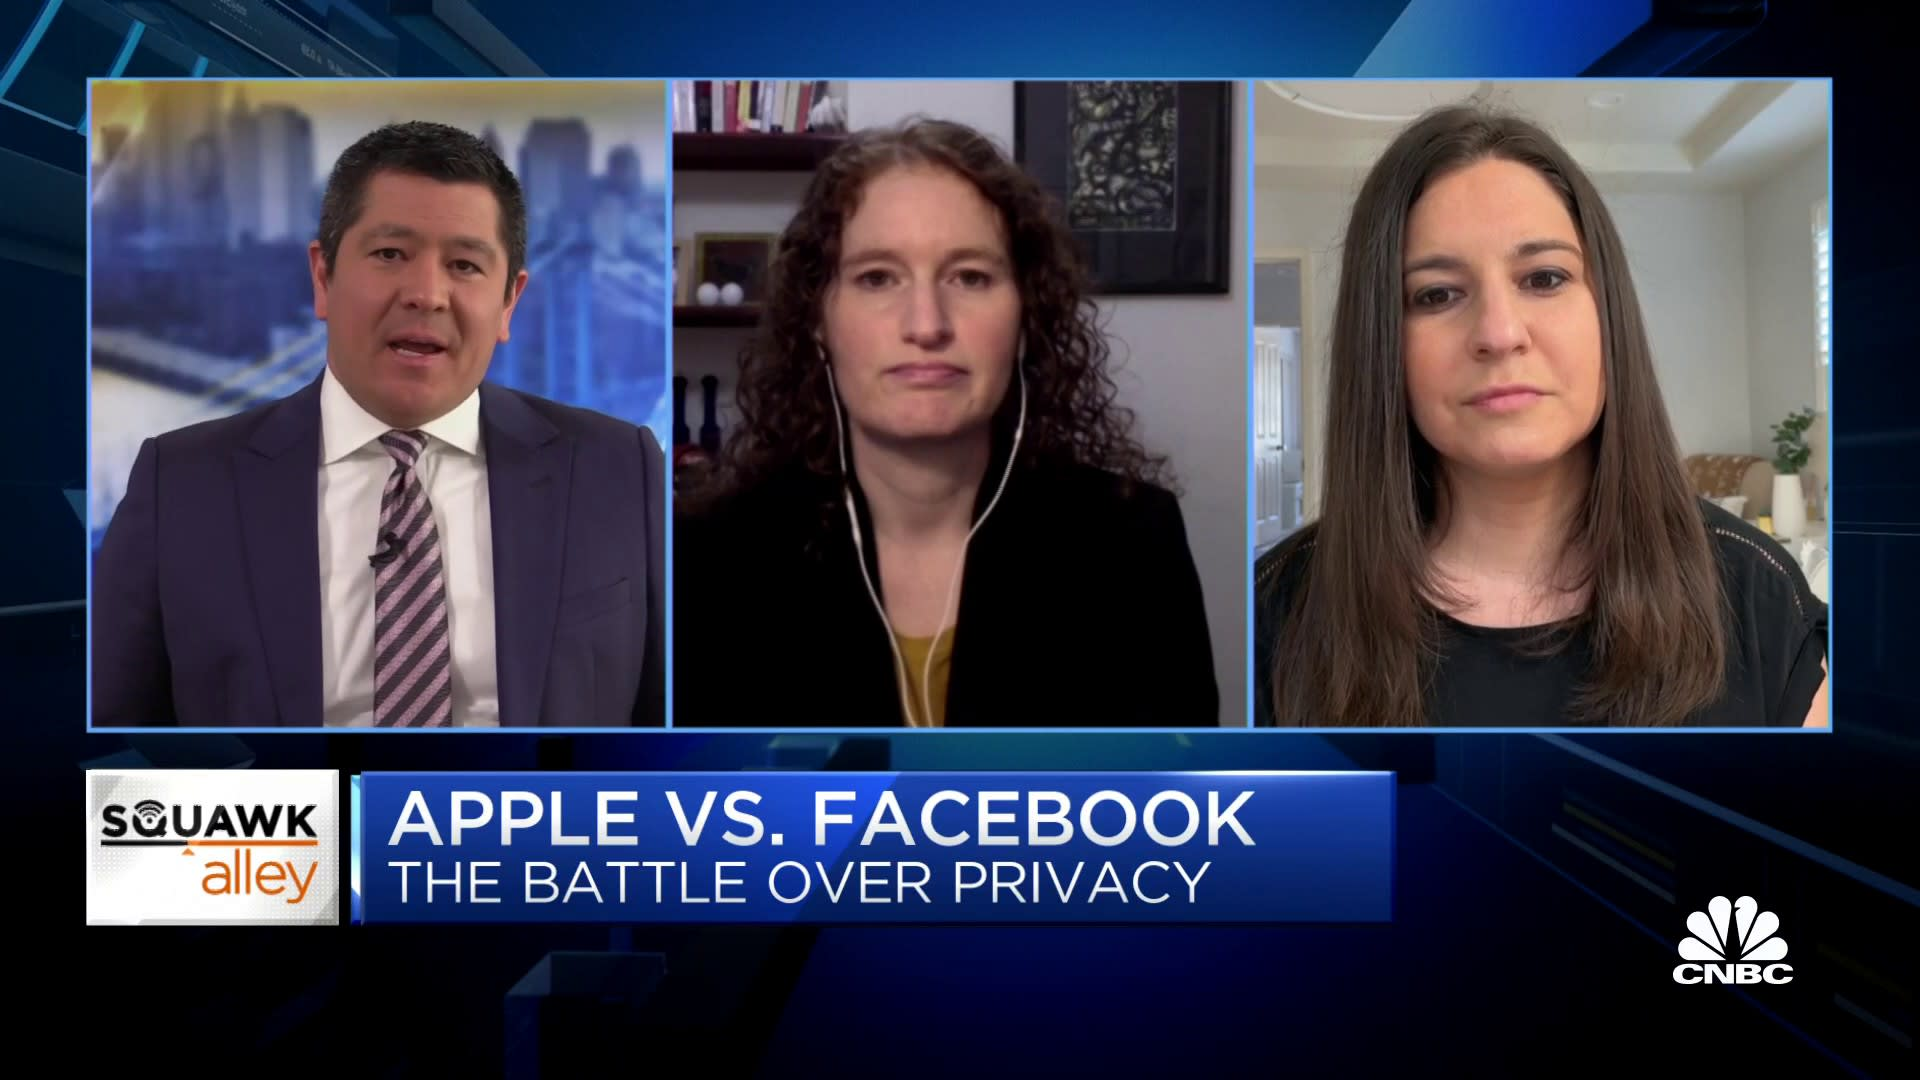 Here's how Apple is battling Big Tech over Privacy